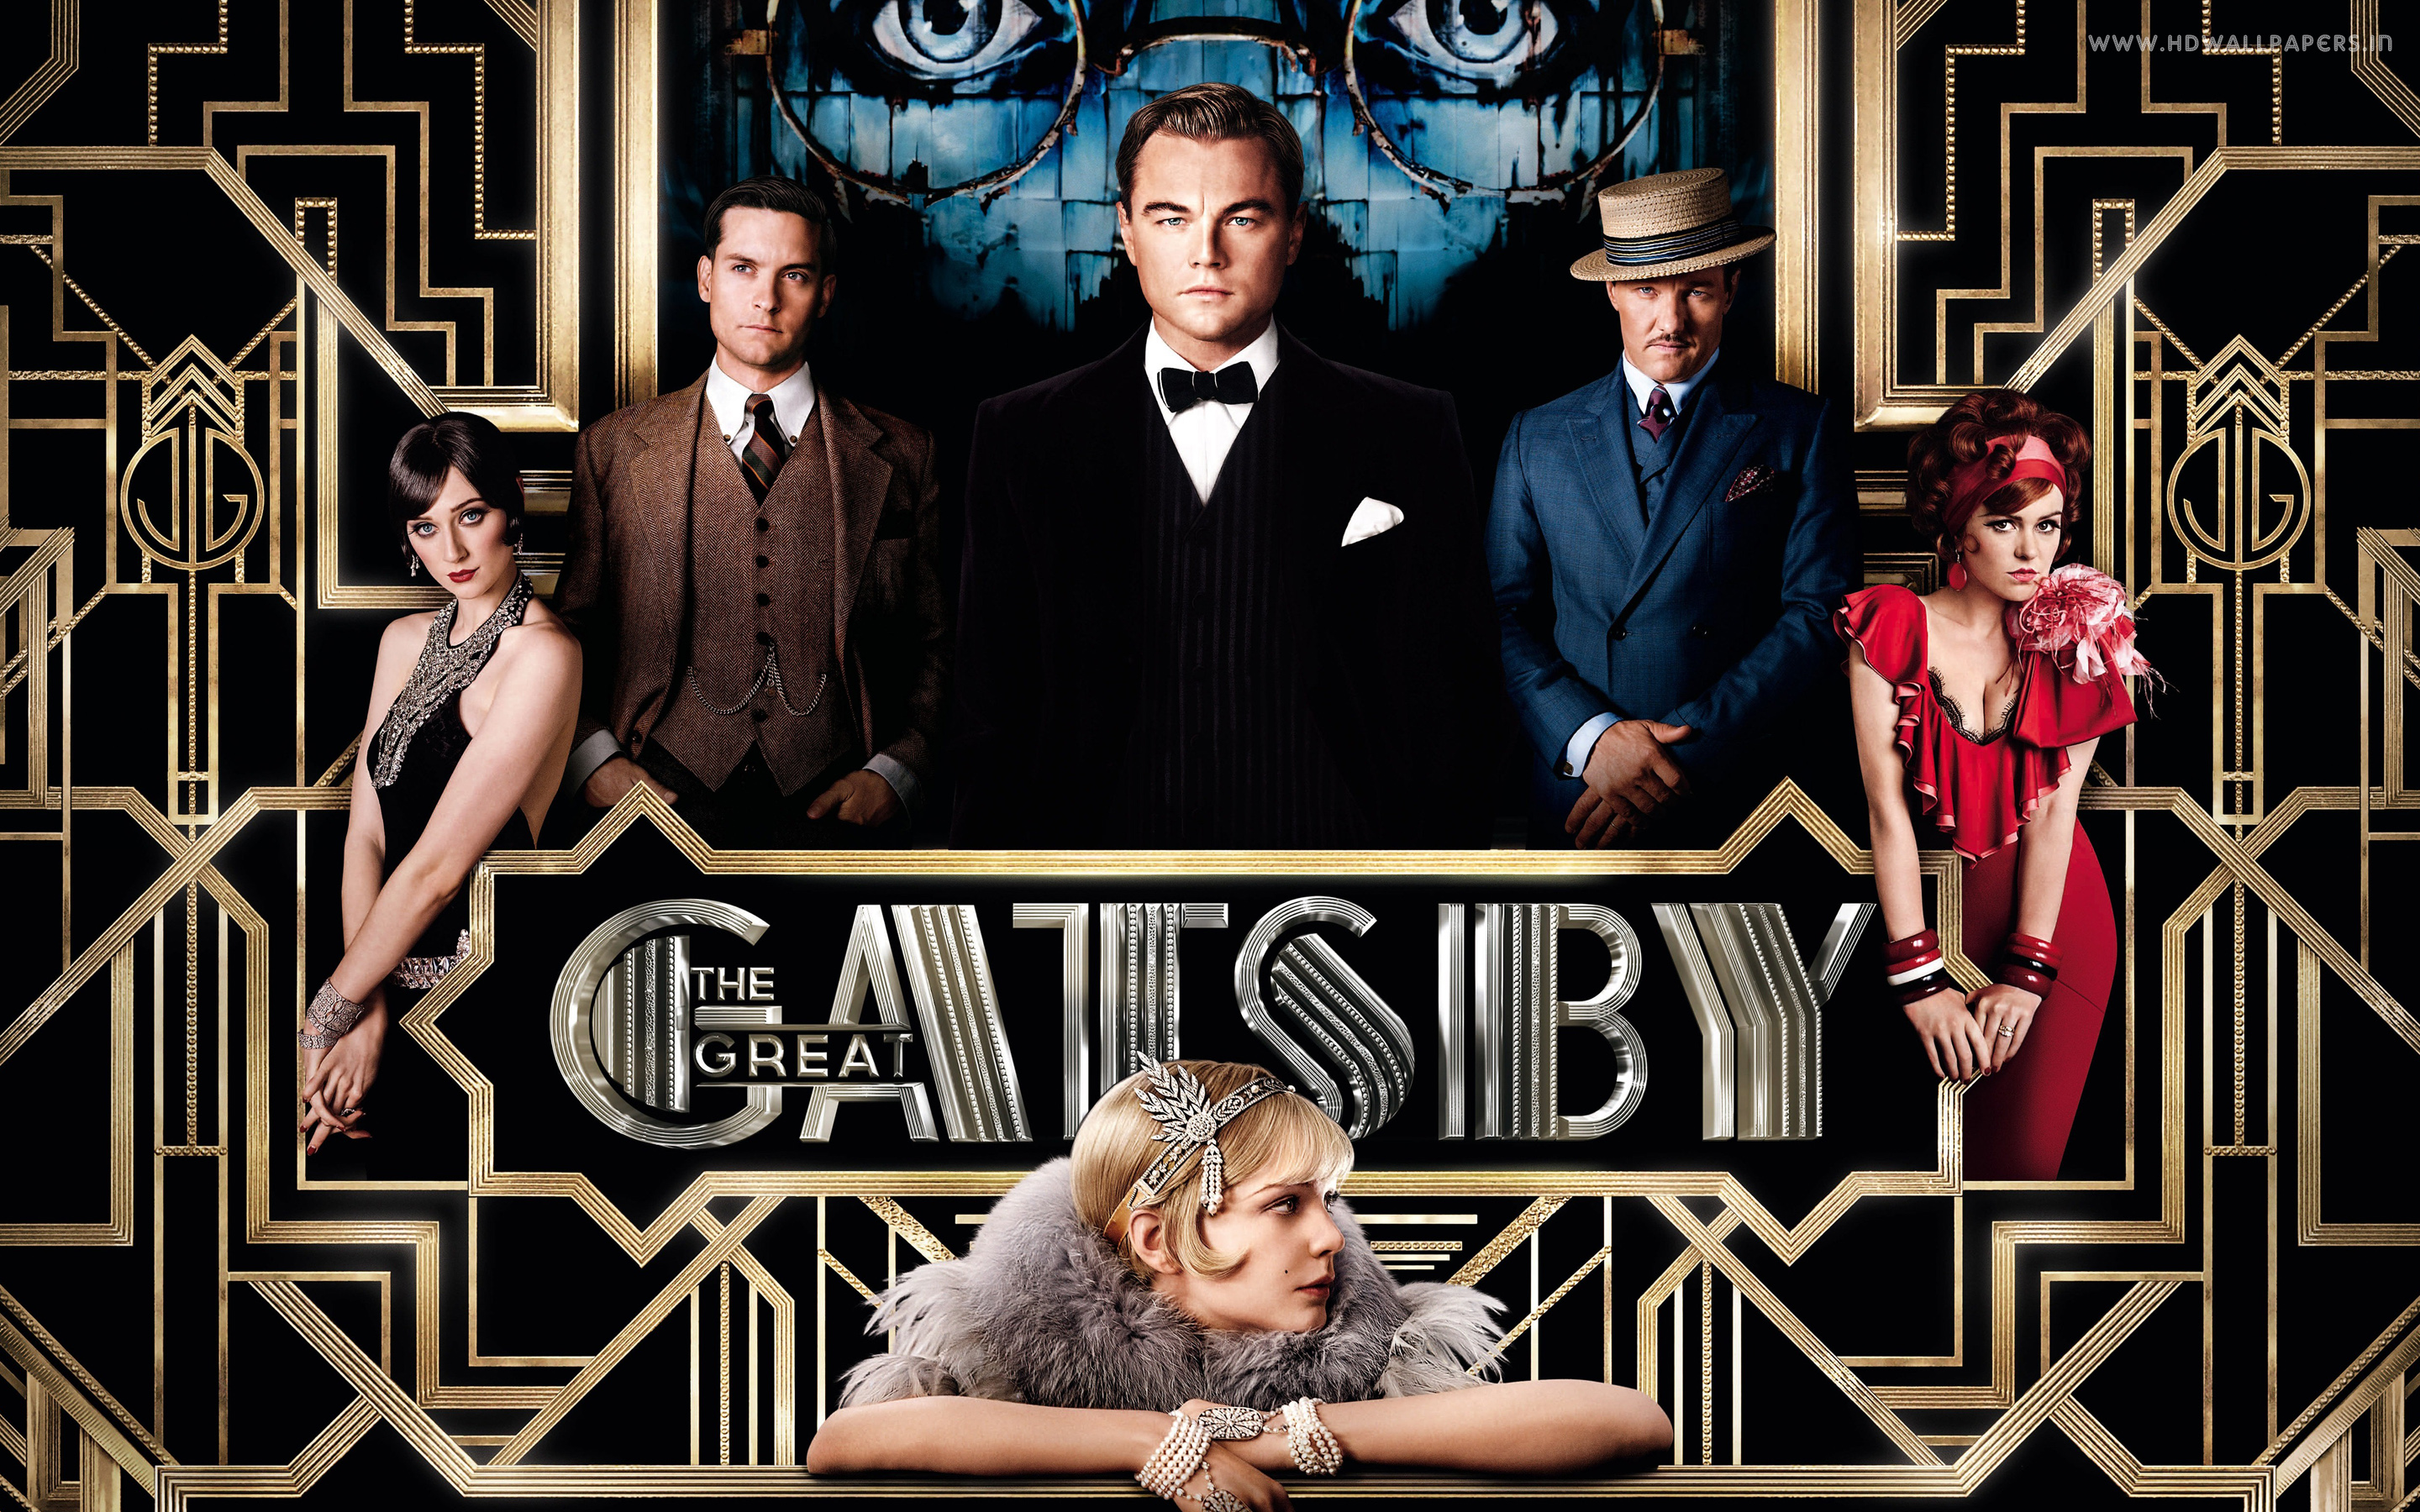 The Great Gatsby, now in theaters.